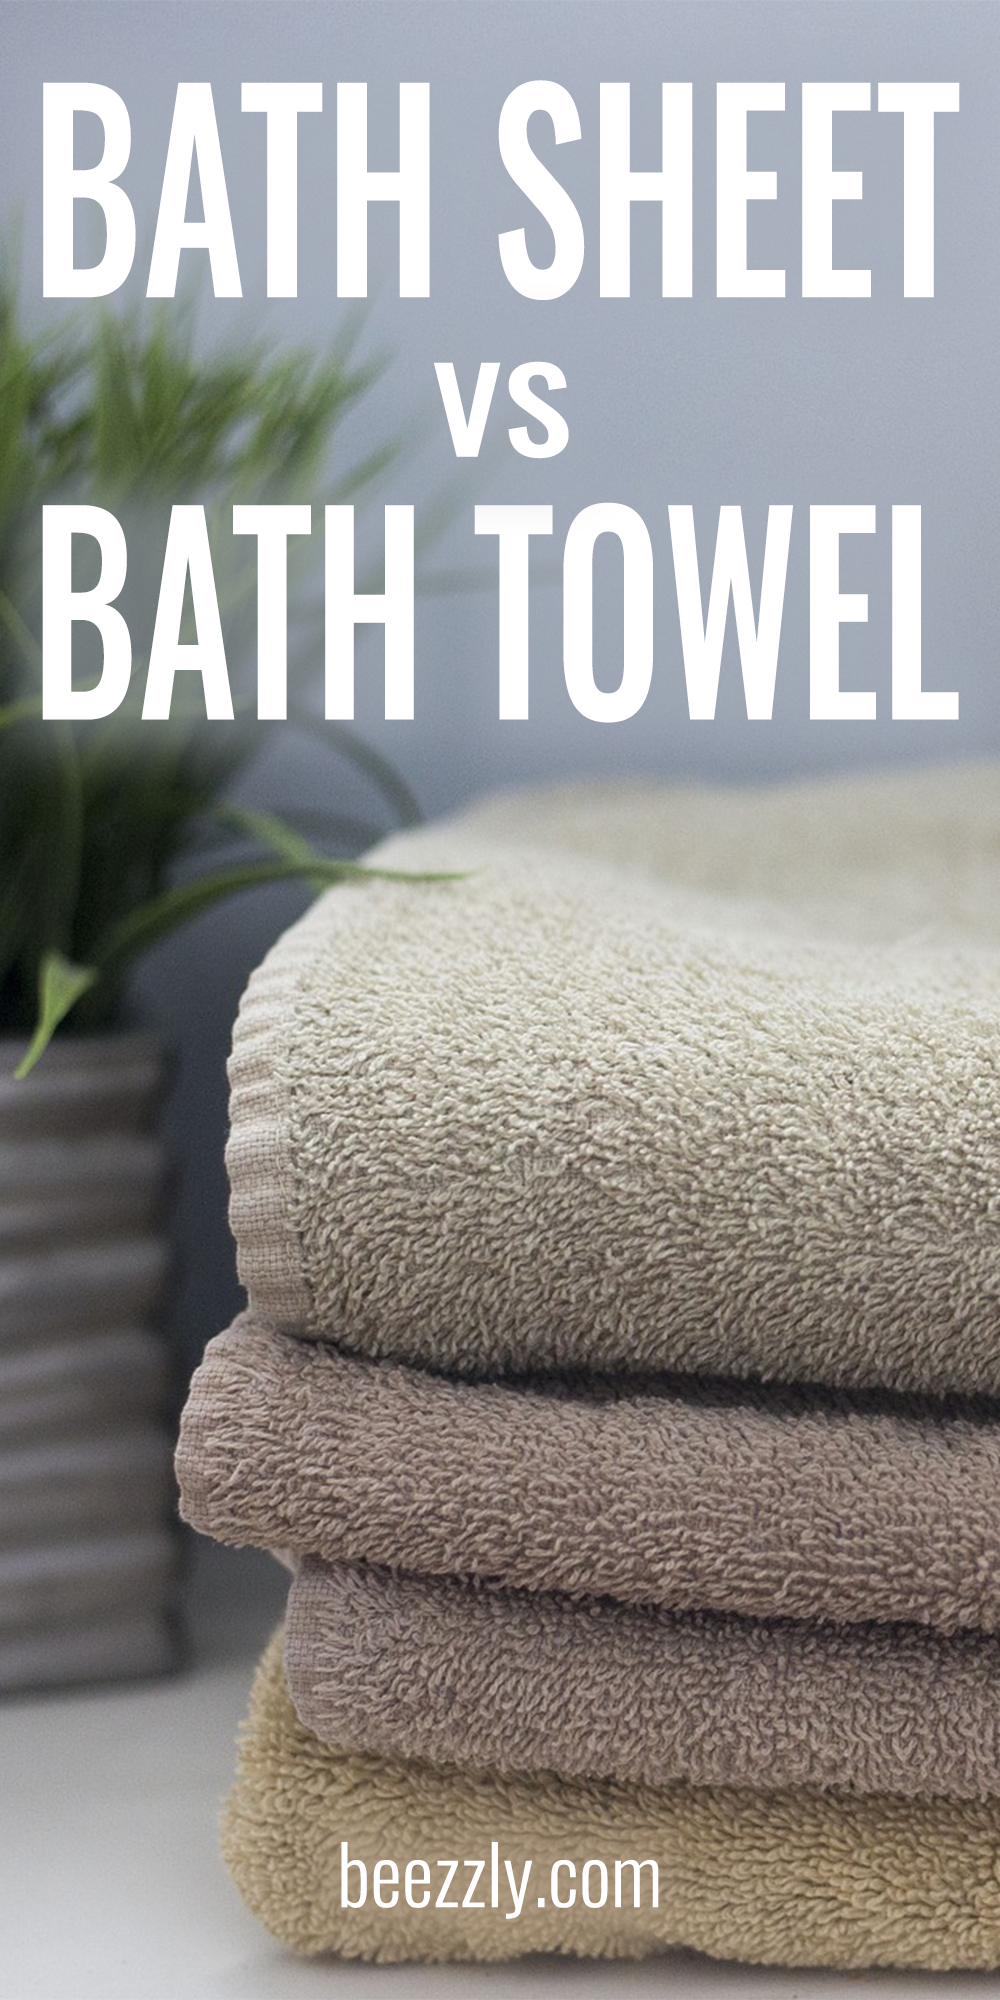 A Bath Sheet Is One Of The Living Essentials An Element Of Bathroom Interior Design And A Great Gift For Any Holiday In 2020 Bath Sheets Bath Towels Large Bath Towel